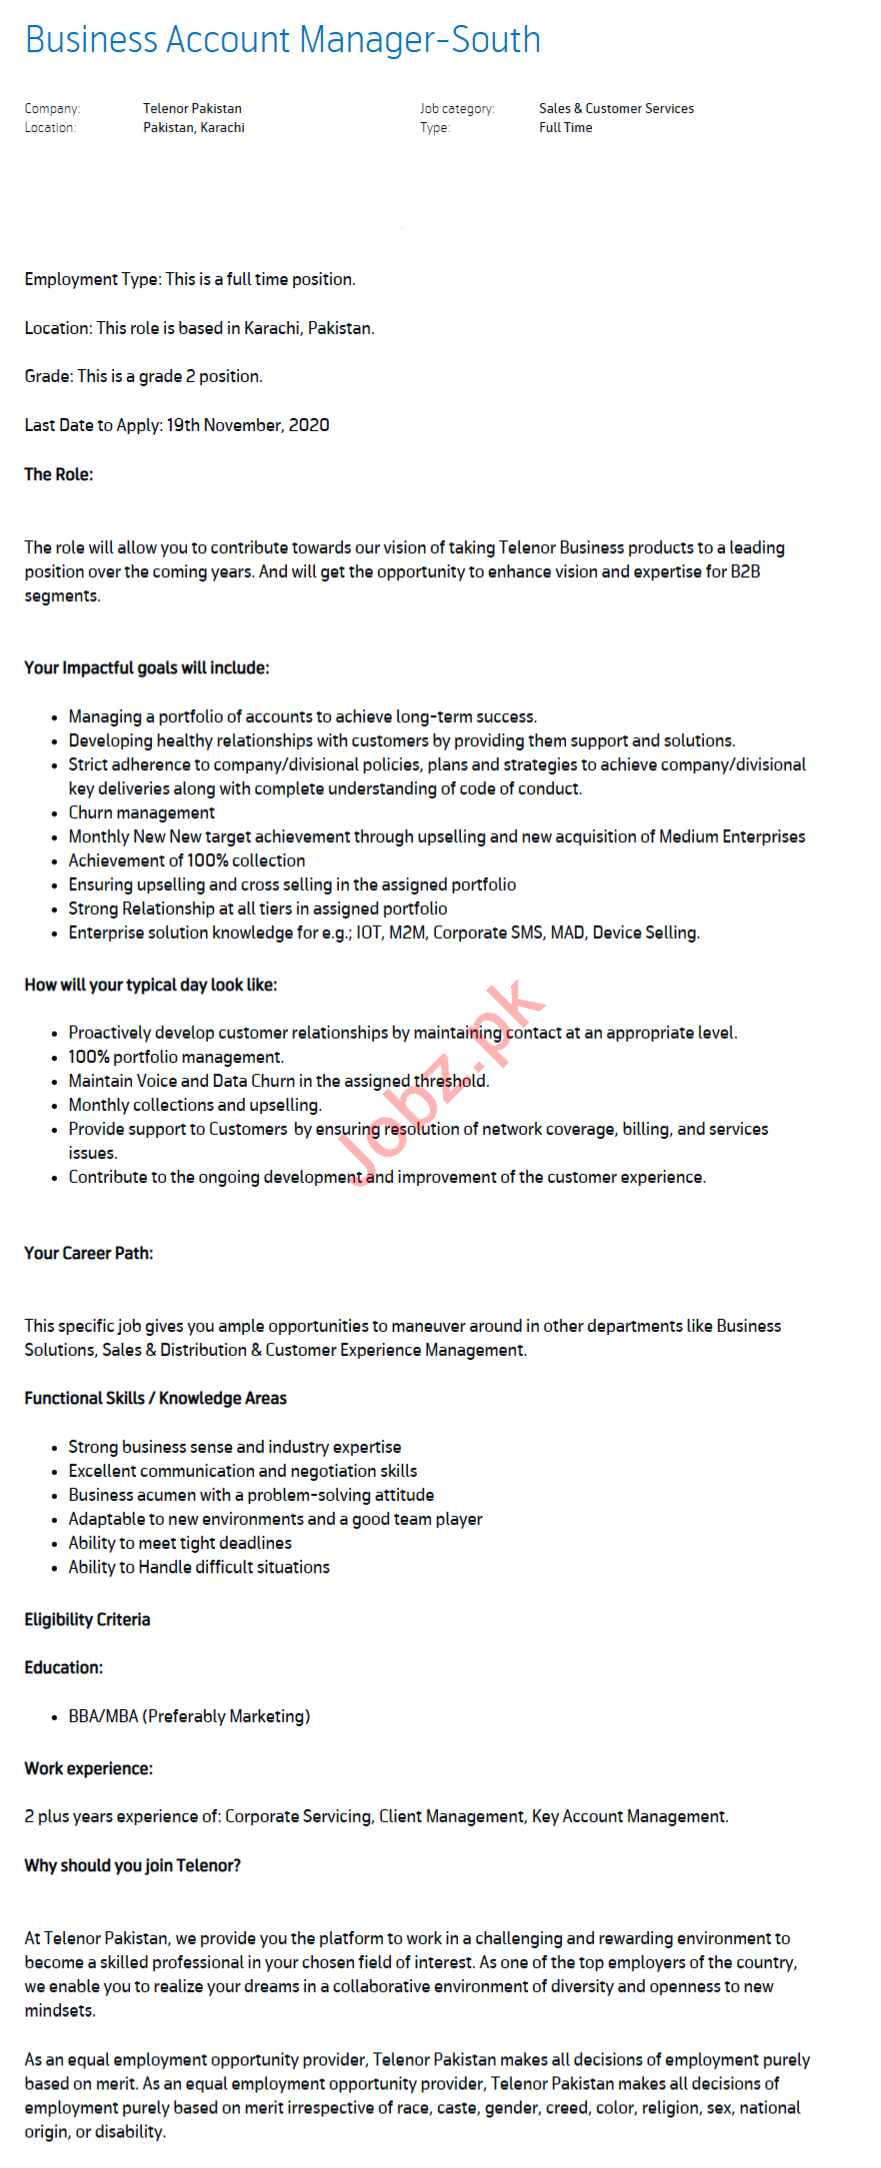 Business Account Manager Jobs 2020 in Karachi